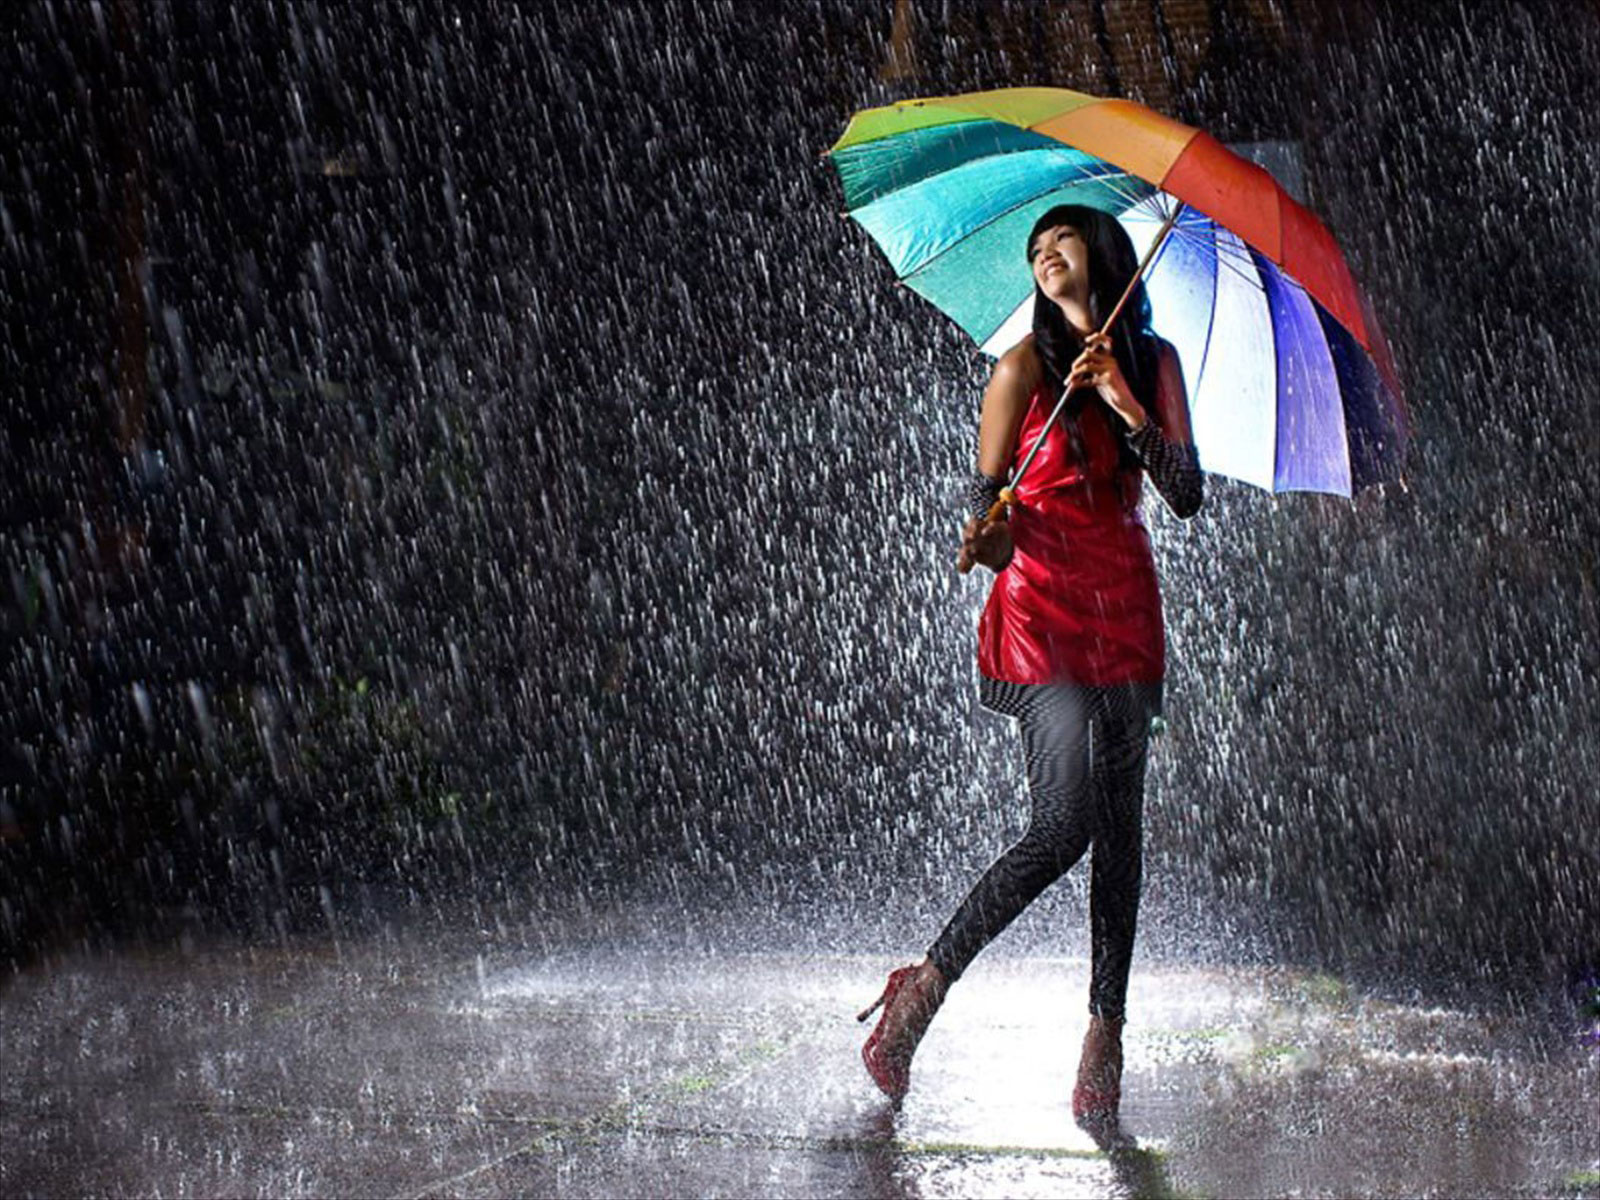 Hd wallpaper pic - Download Girl In Rain Hd Wallpaper Pictures High Definition Or